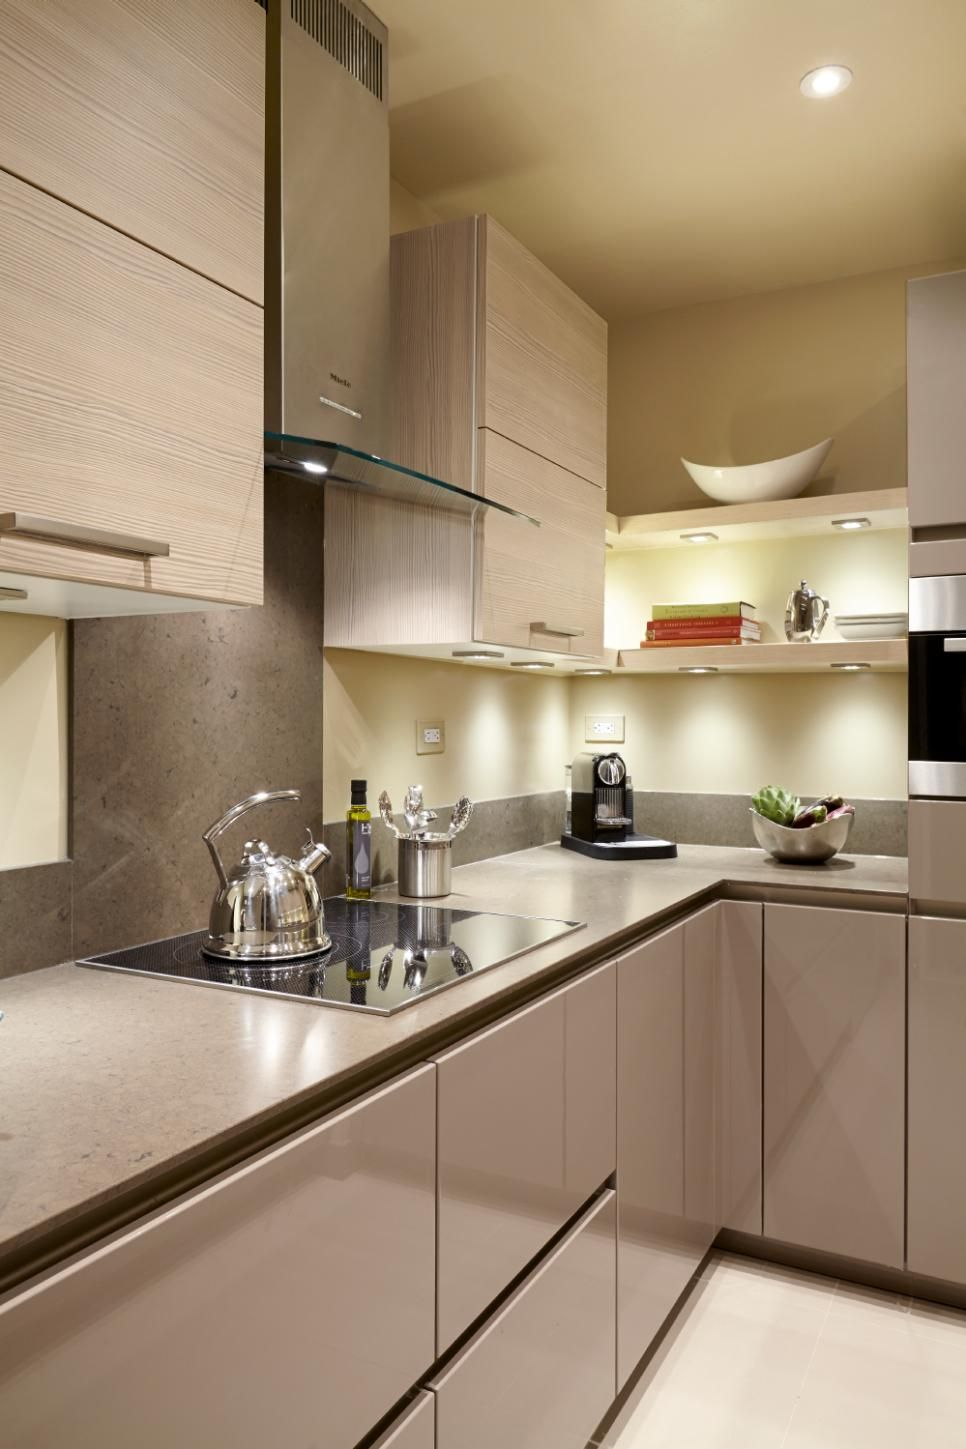 the thin, ½ inch countertops and the handle-free concept